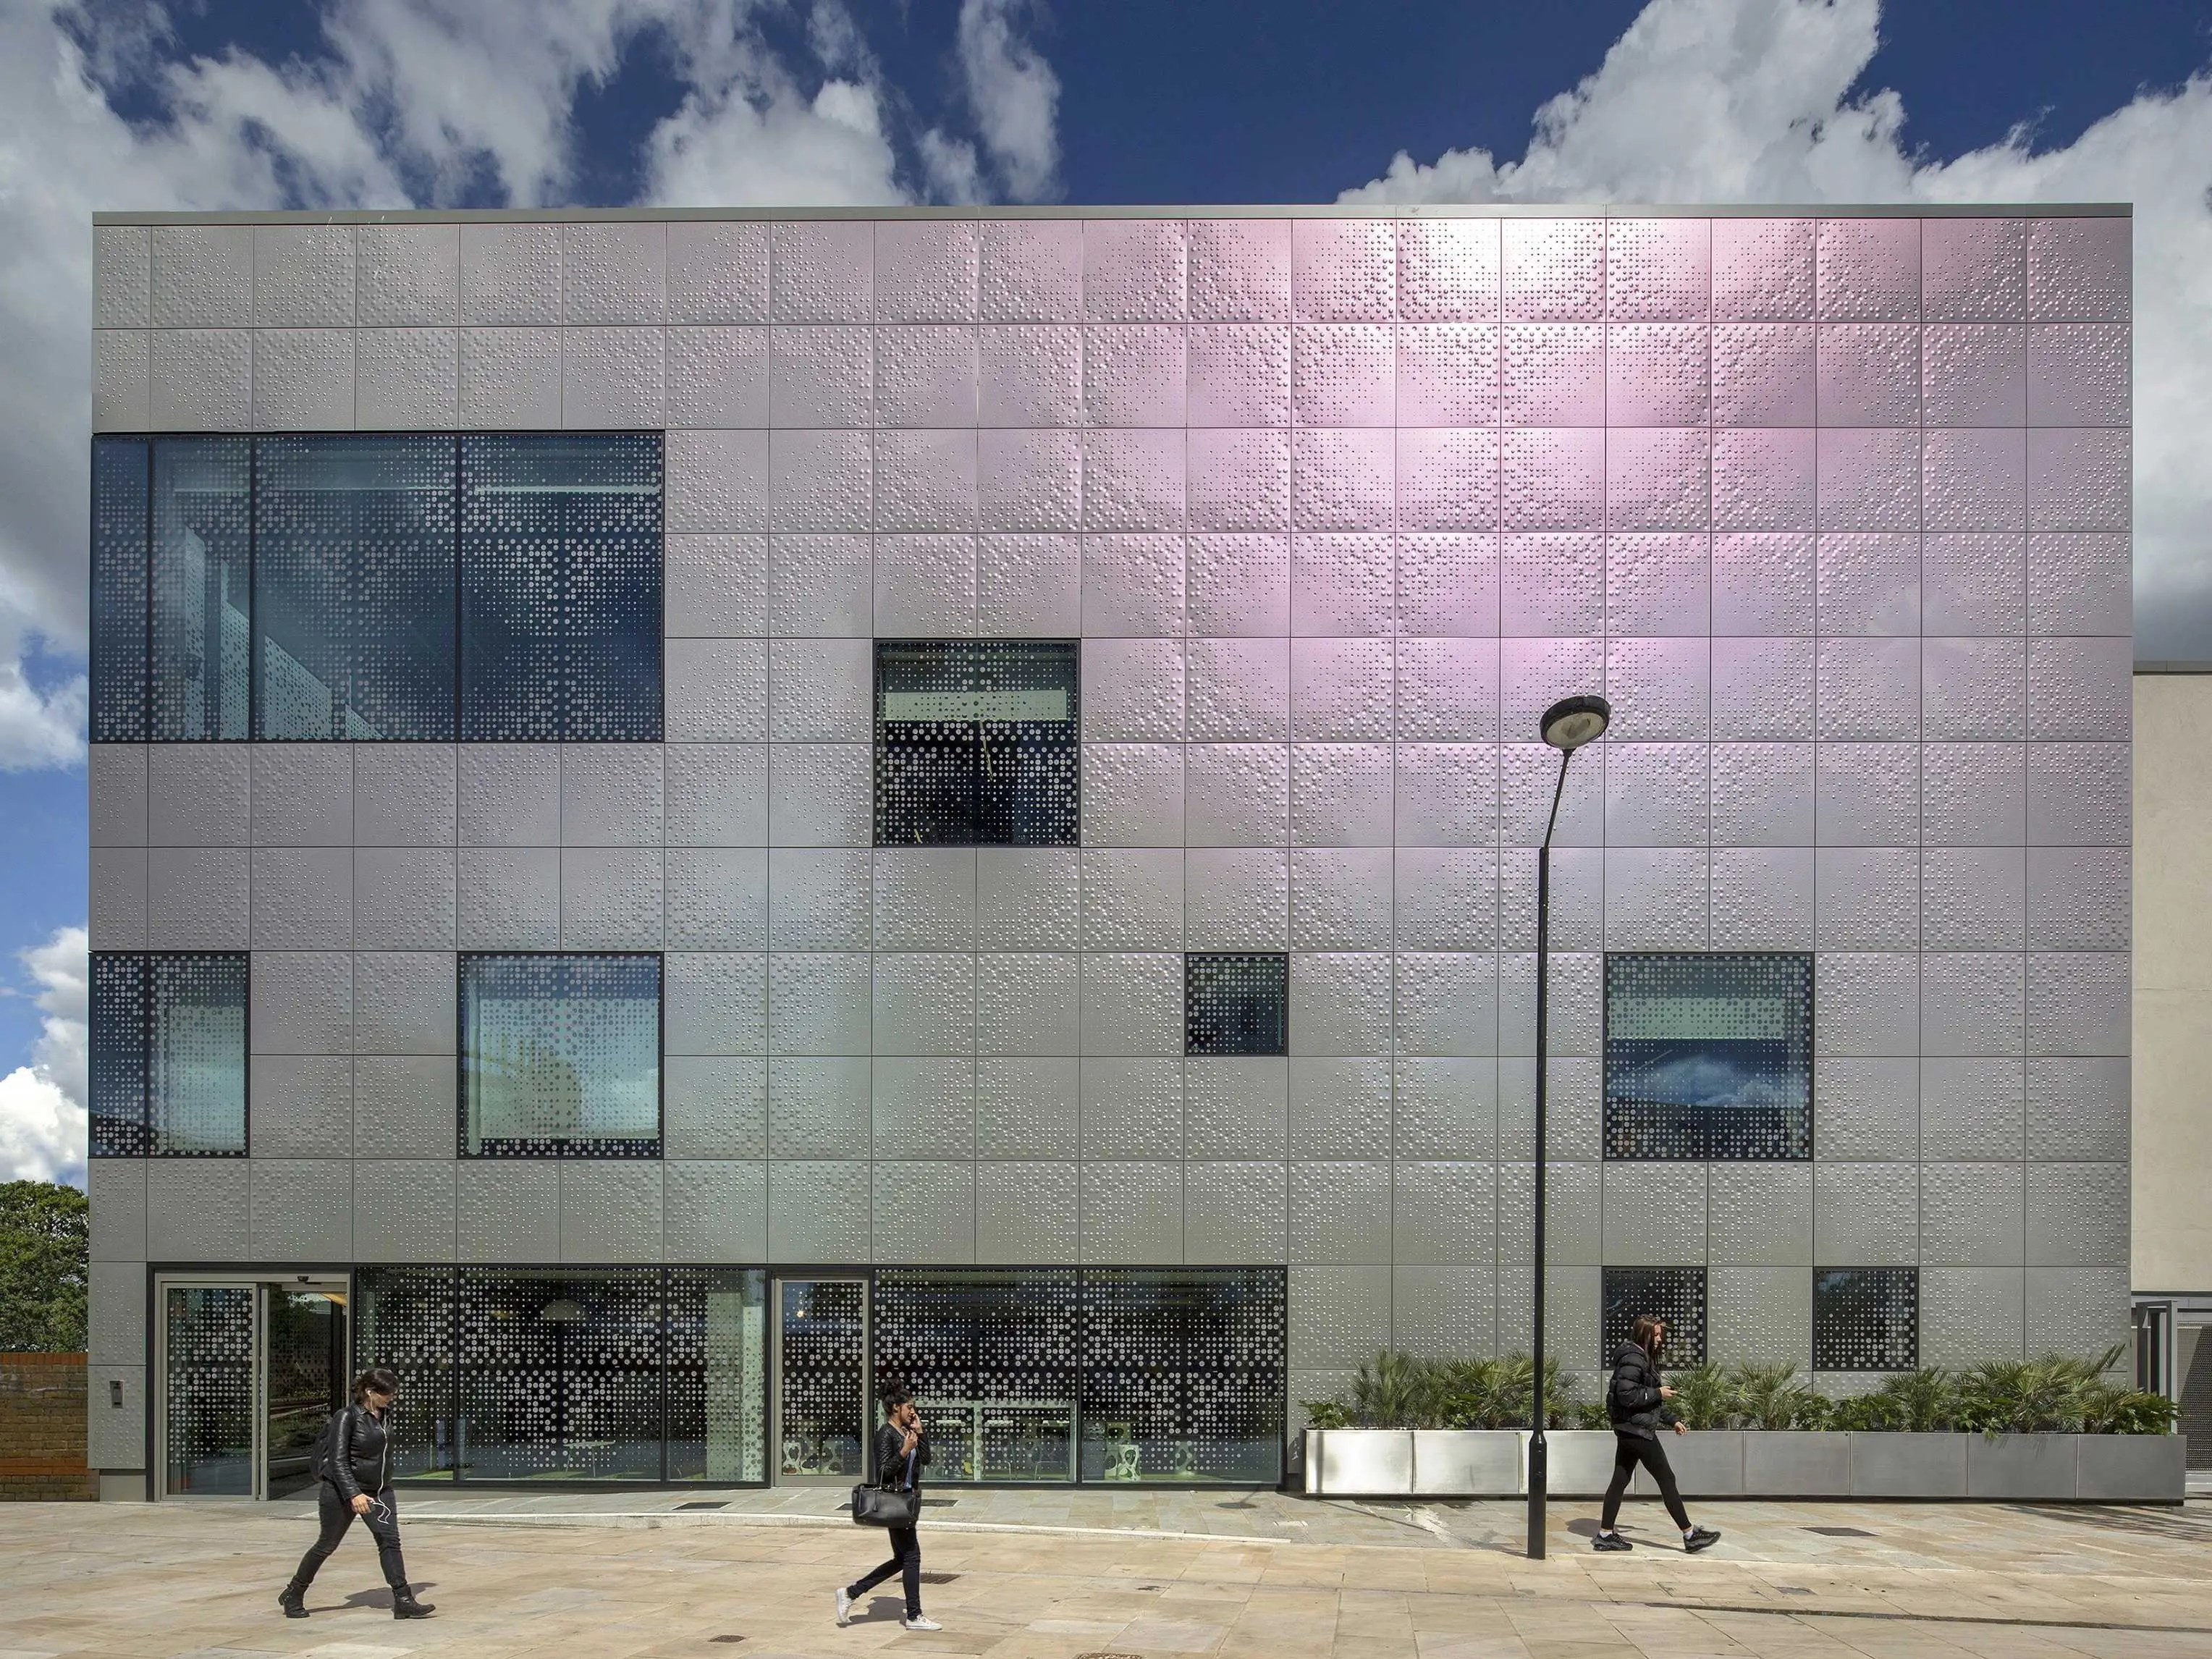 Spotlight Youth Space by Astudio, London, England (shortlisted in Civic and Community)